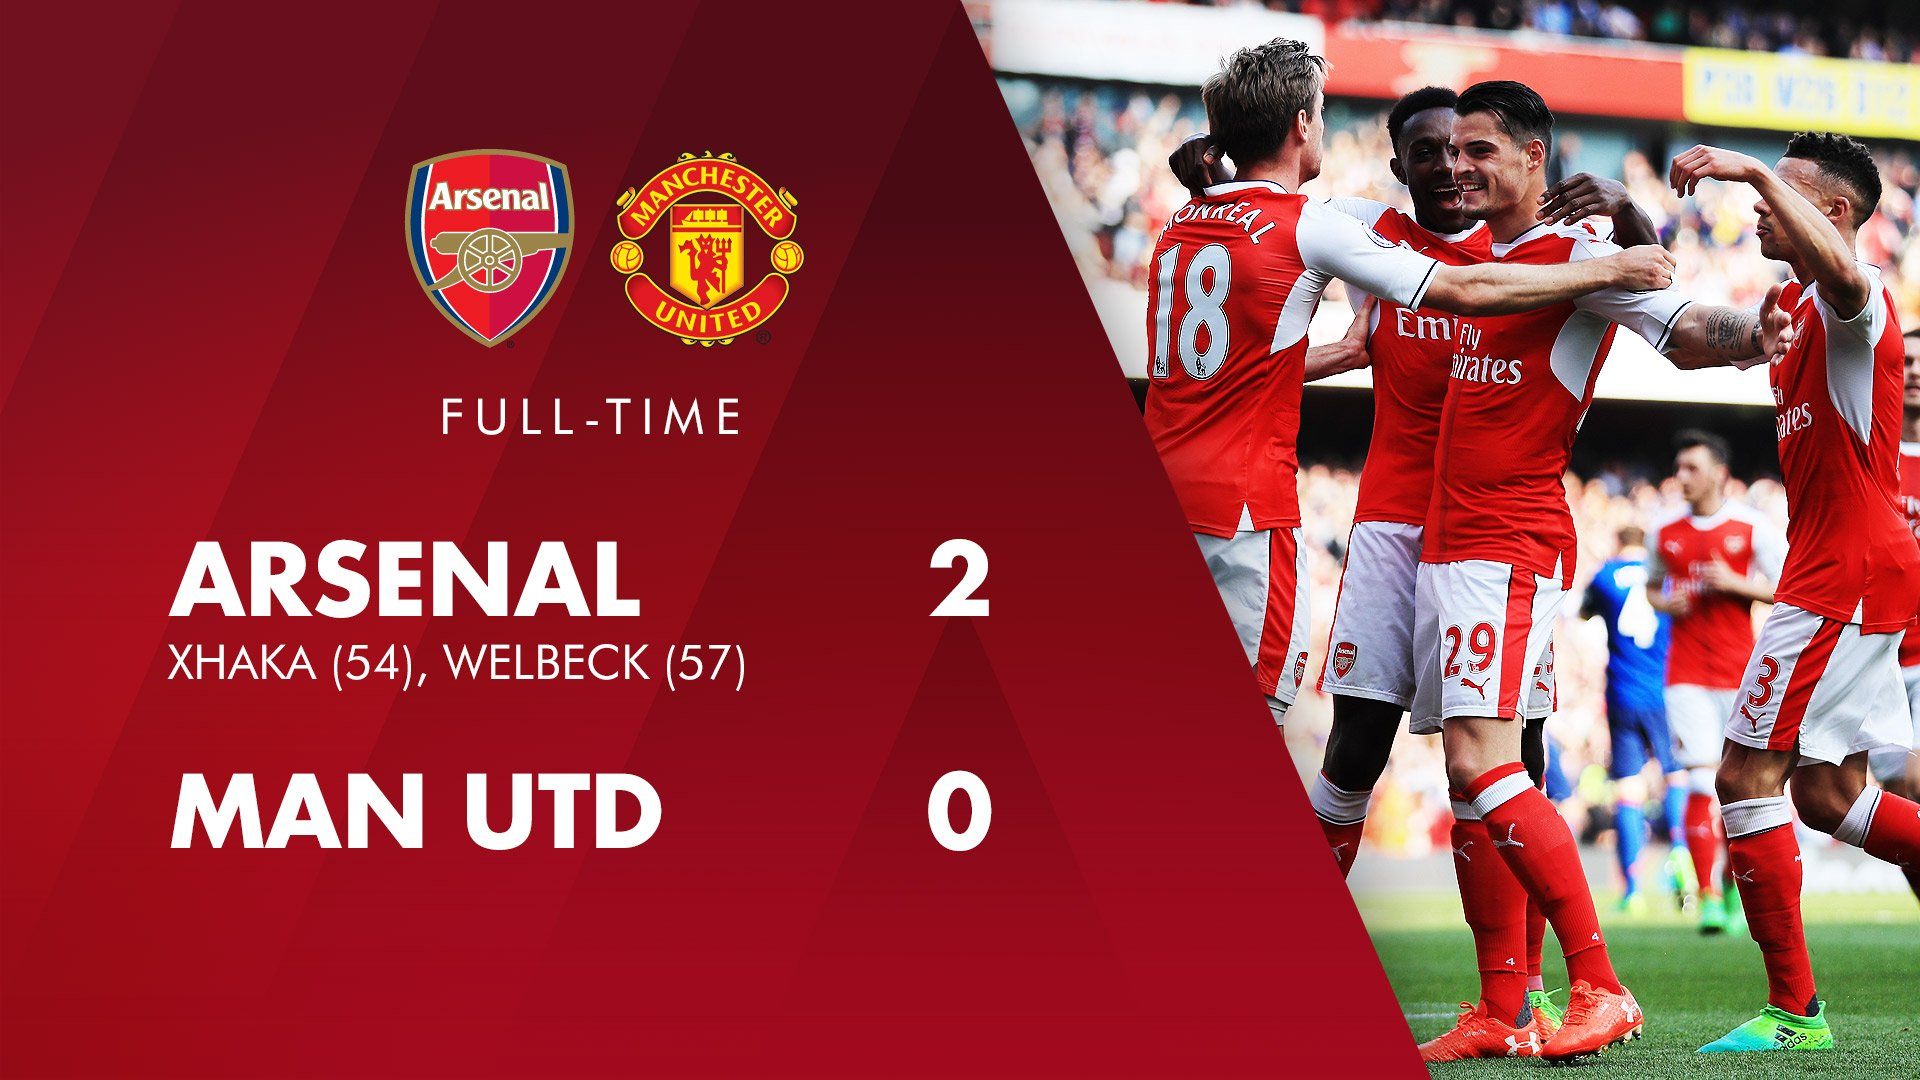 Top stuff lads ��  #AFCvMUFC ��2-0�� https://t.co/14MPa37nDa